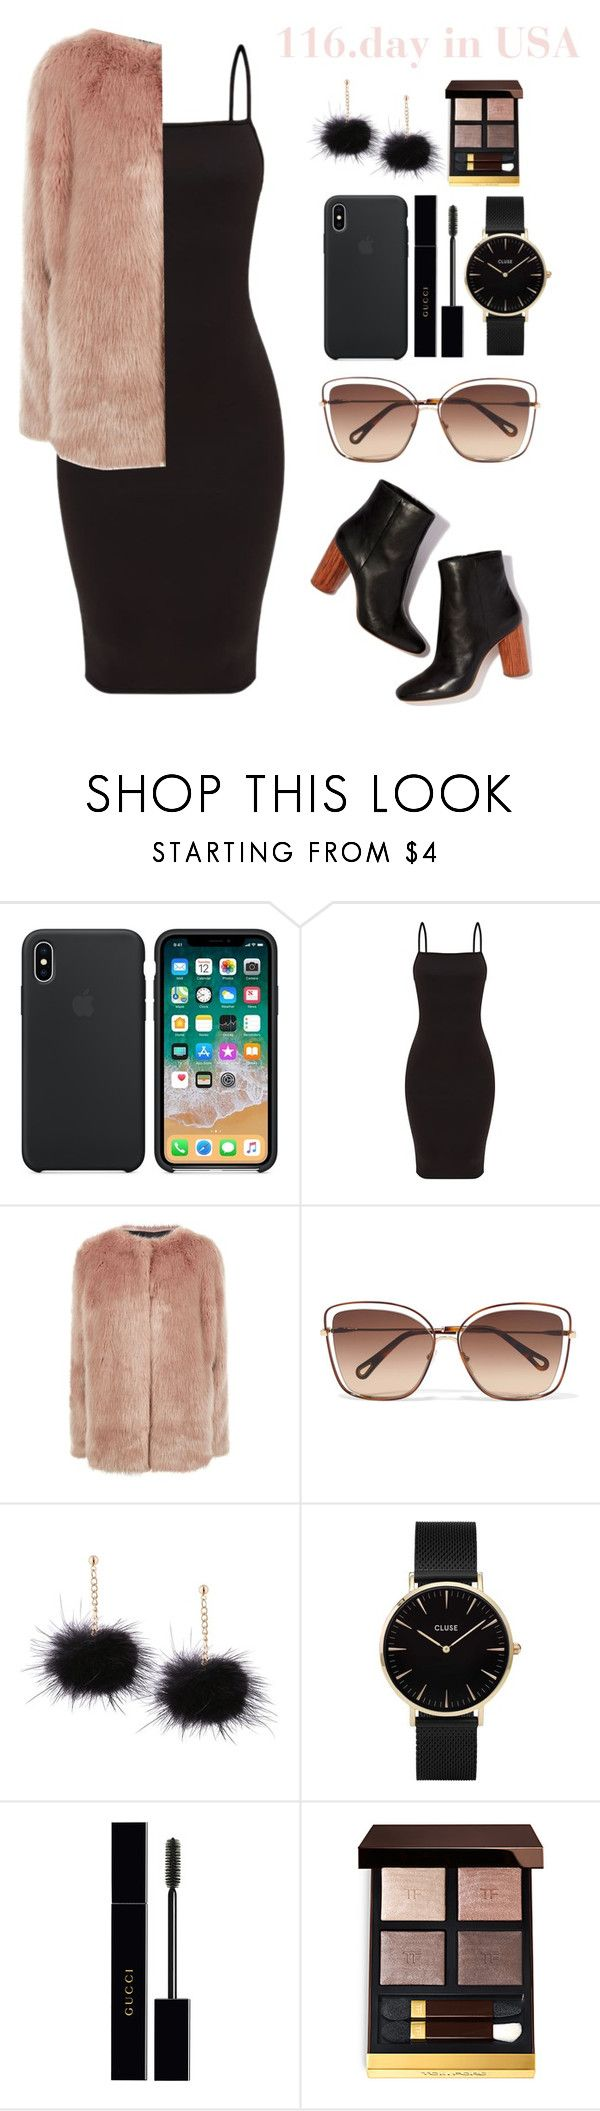 """""""116.day in USA"""" by elizcoco ❤ liked on Polyvore featuring Pinko, Chloé, CLUSE, Gucci and Tom Ford"""